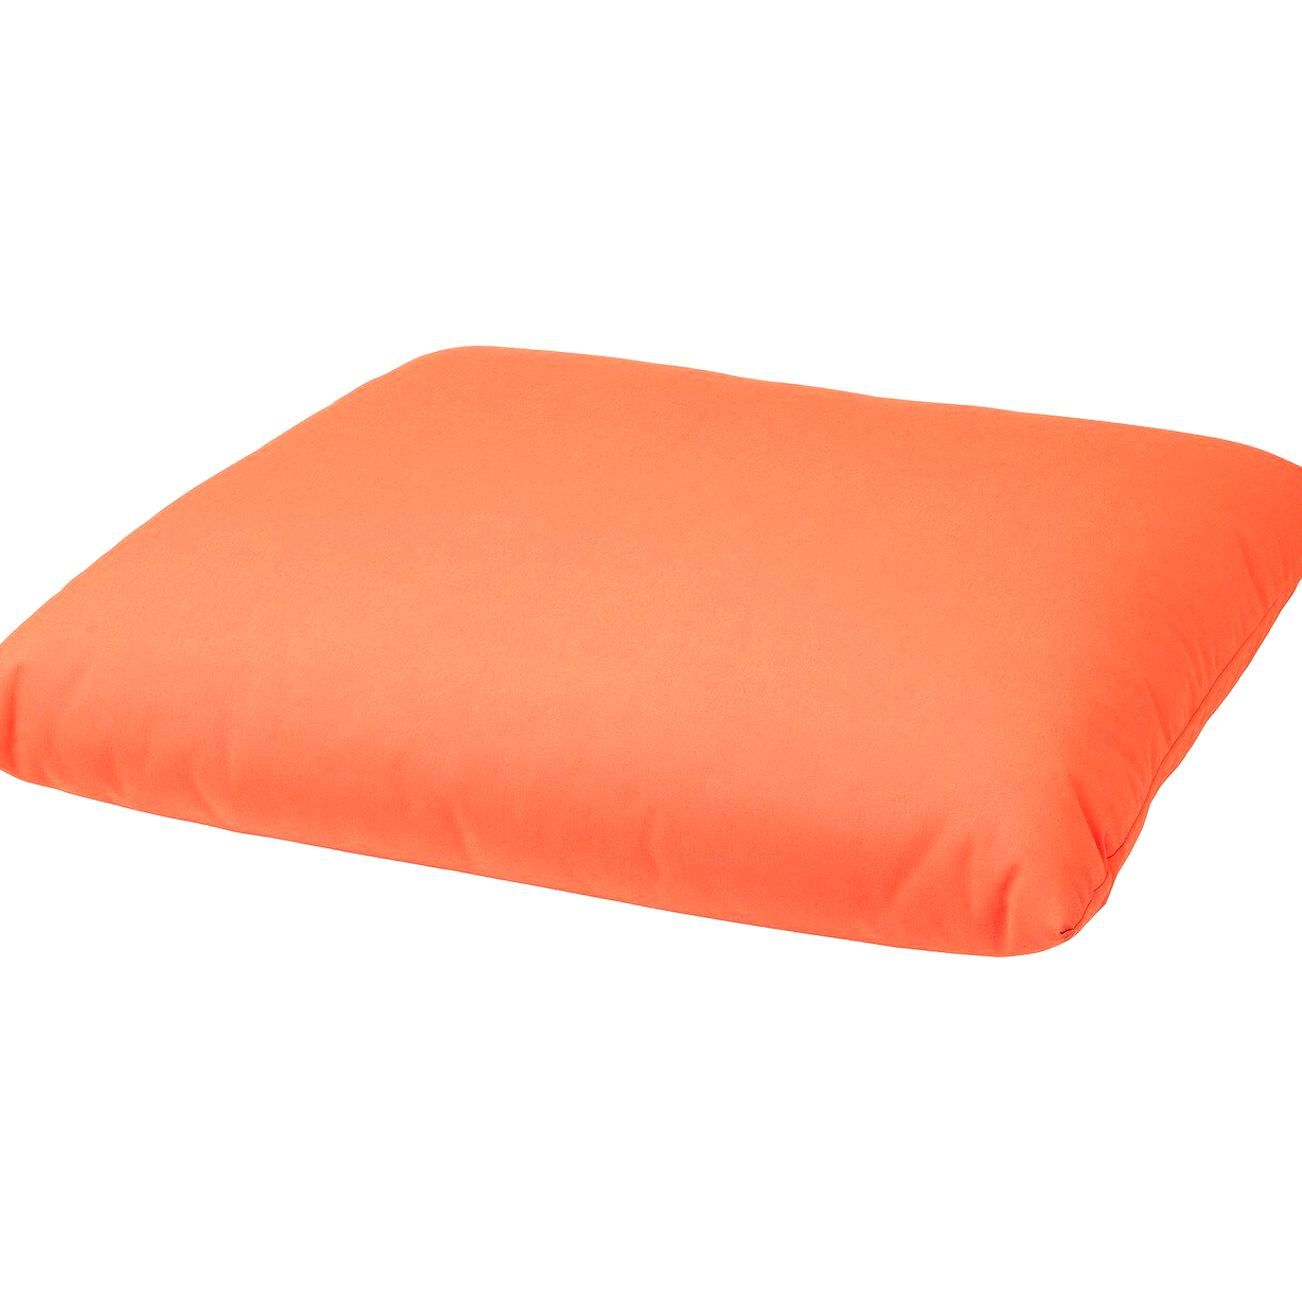 Ikea Sitzpolsterauen Havsten Orange Breite 98 Cm Tiefe 100 Cm In 2020 Cushions Ikea Orange Seating Seat Cushions